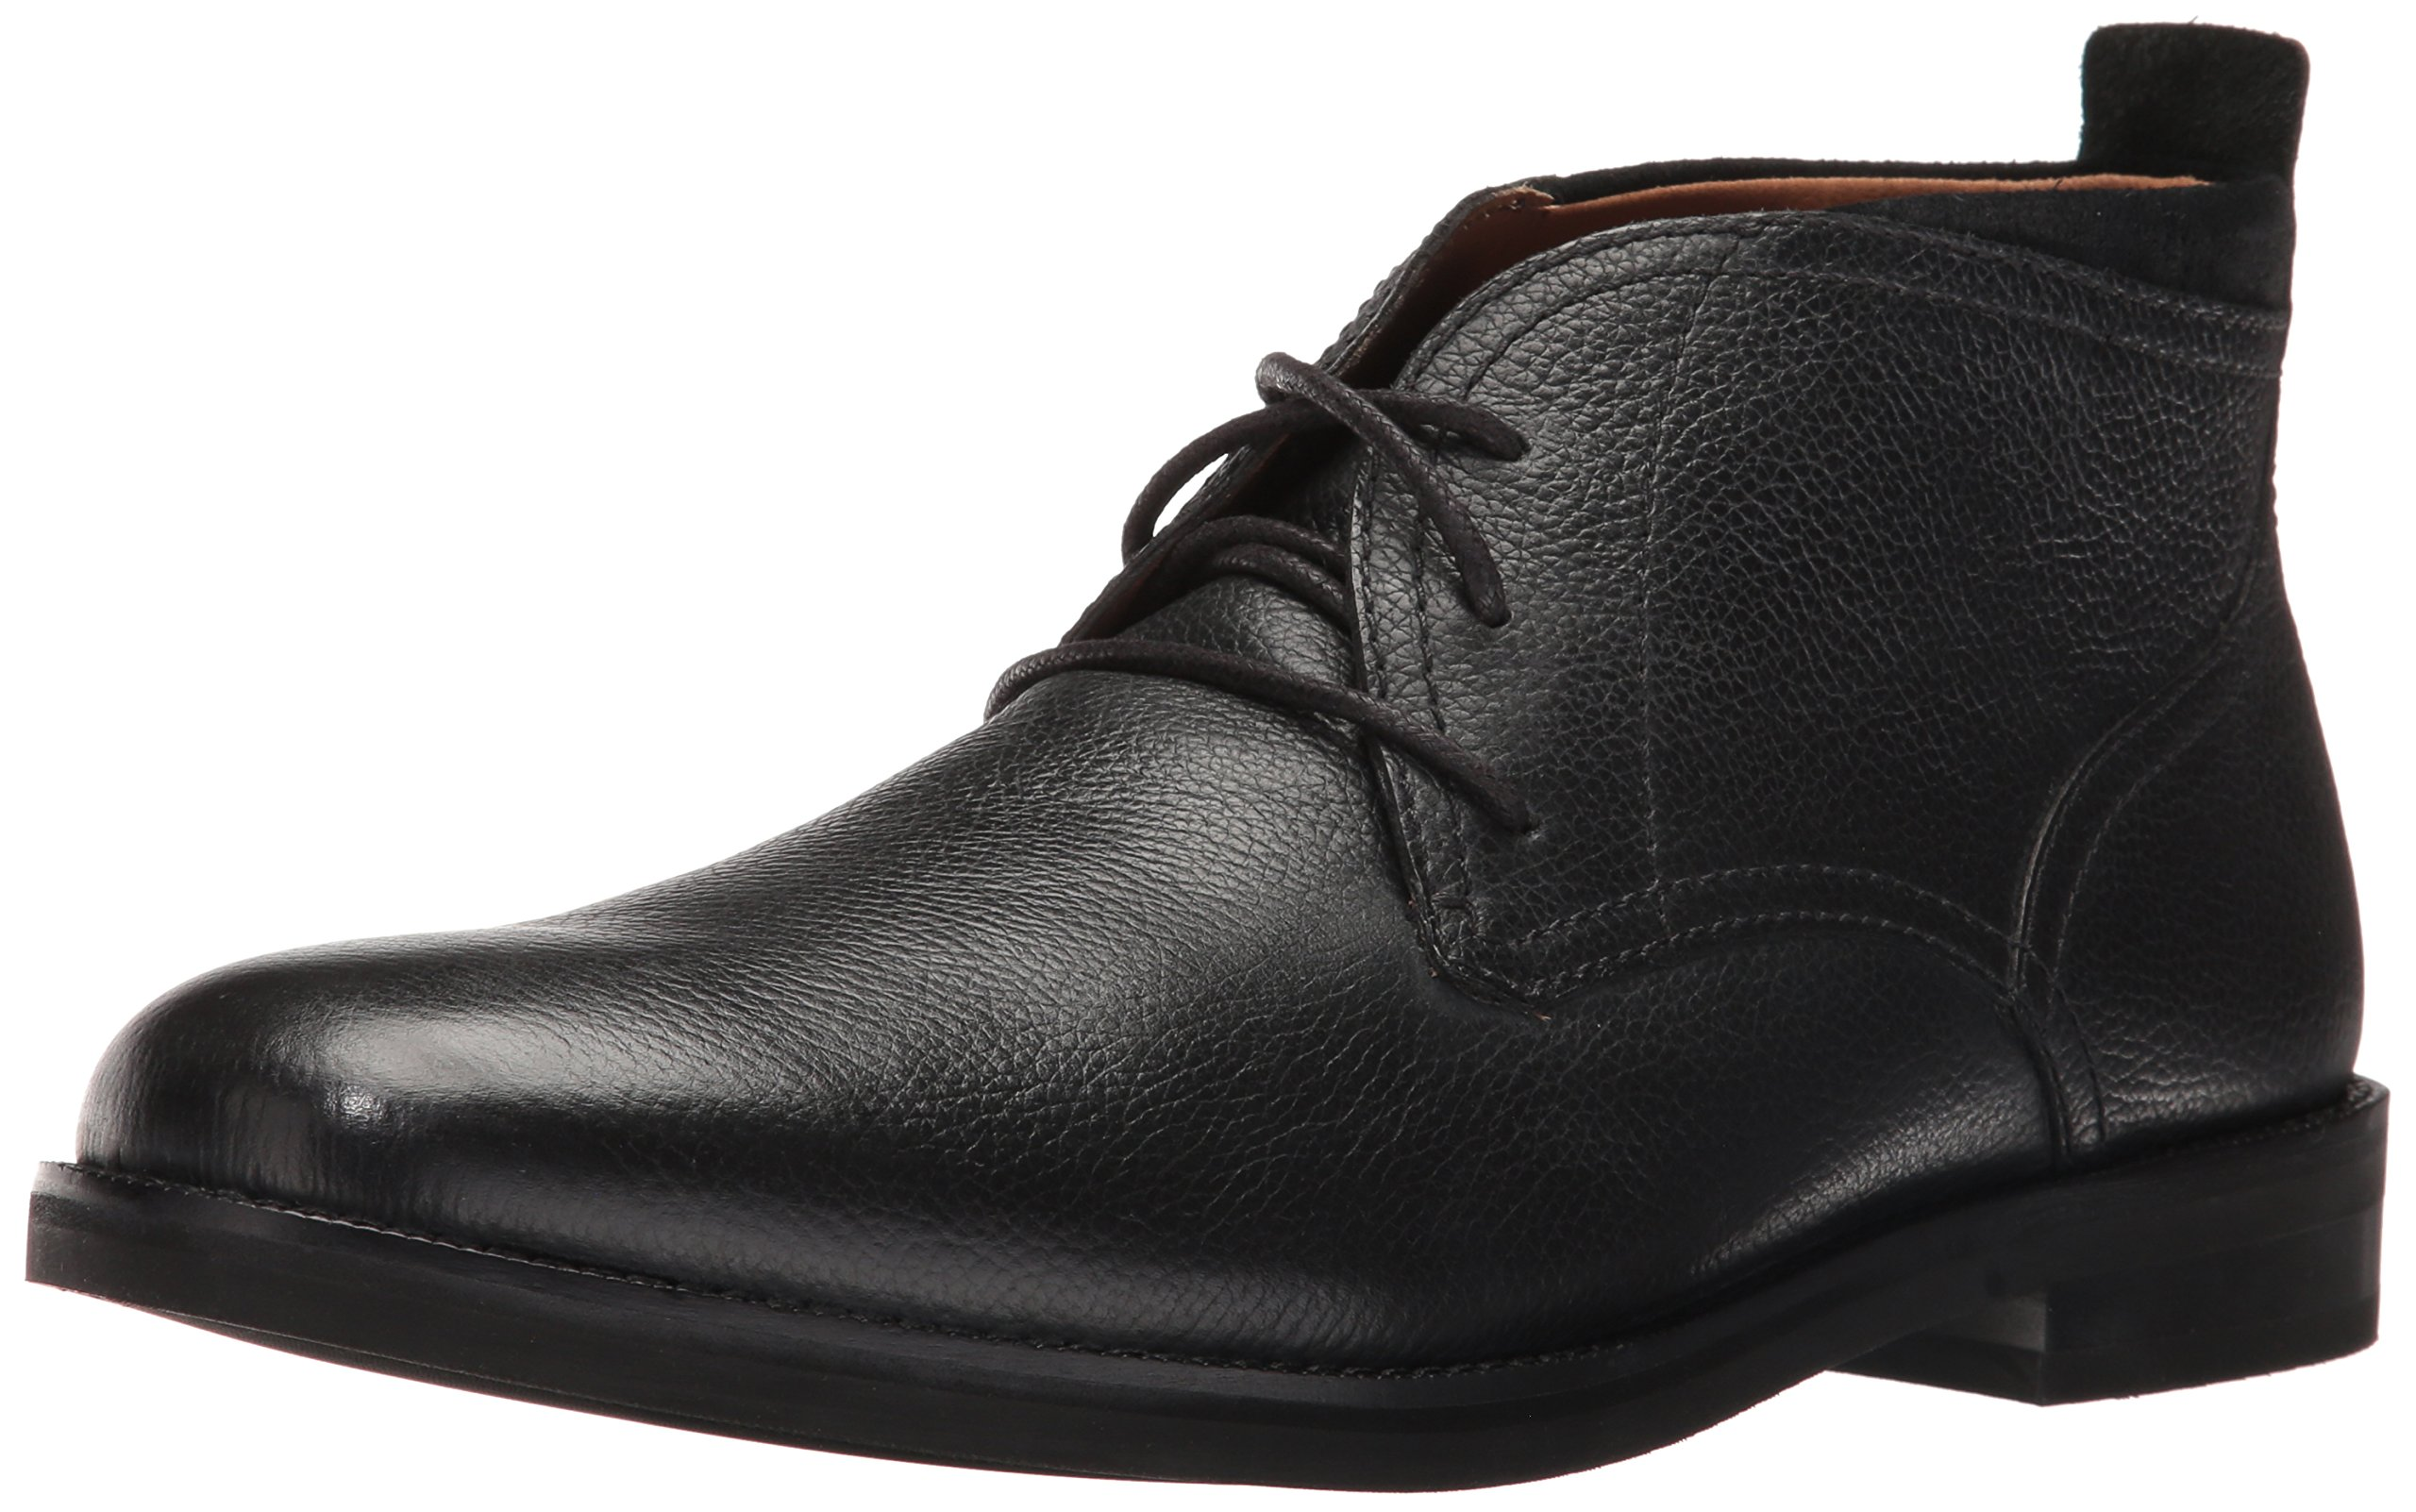 Cole Haan Men's Ogden Stitch II Chukka Boot, Black Tumble, 11.5 Medium US by Cole Haan